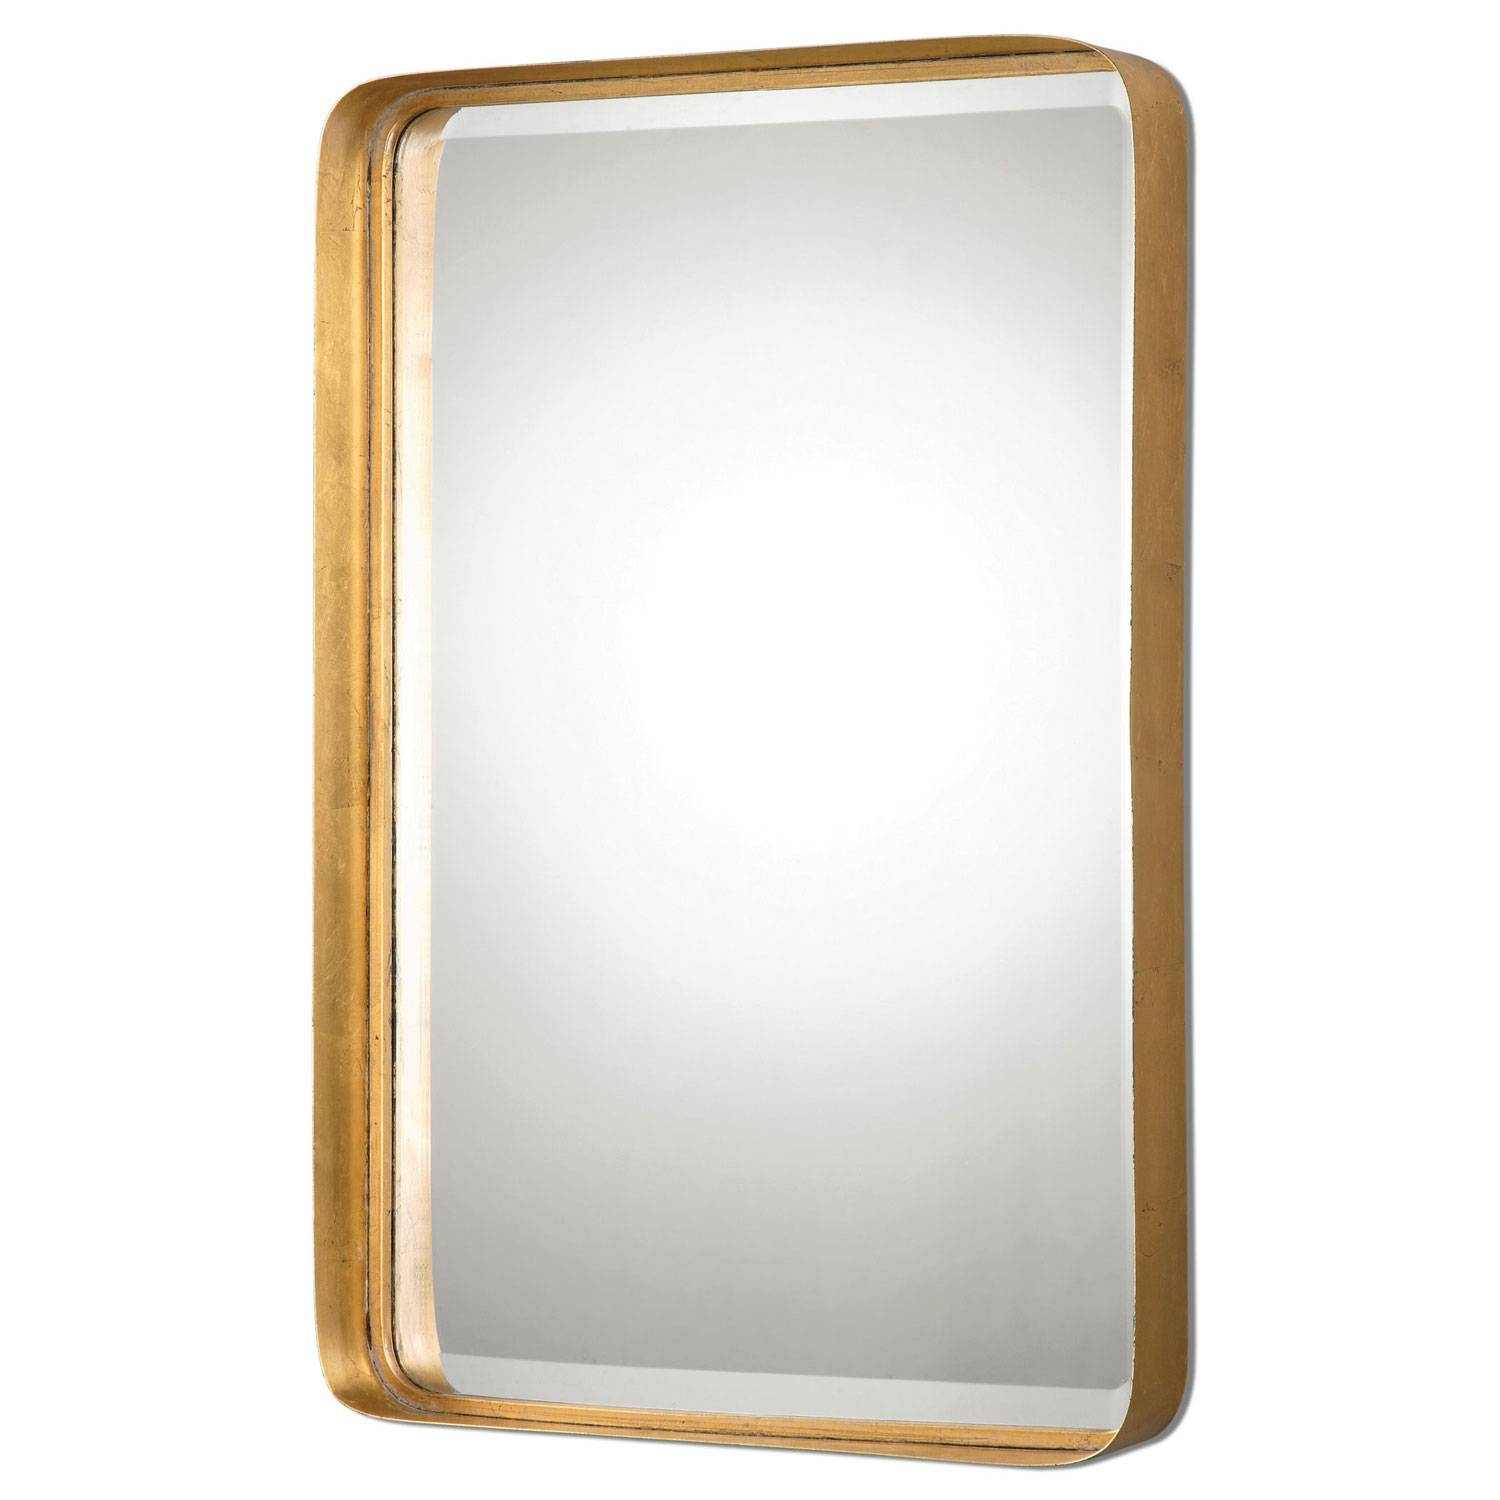 Crofton Antique Gold Mirror Uttermost Wall Mirror Mirrors Home Decor Regarding Antique Gold Mirrors (View 3 of 25)